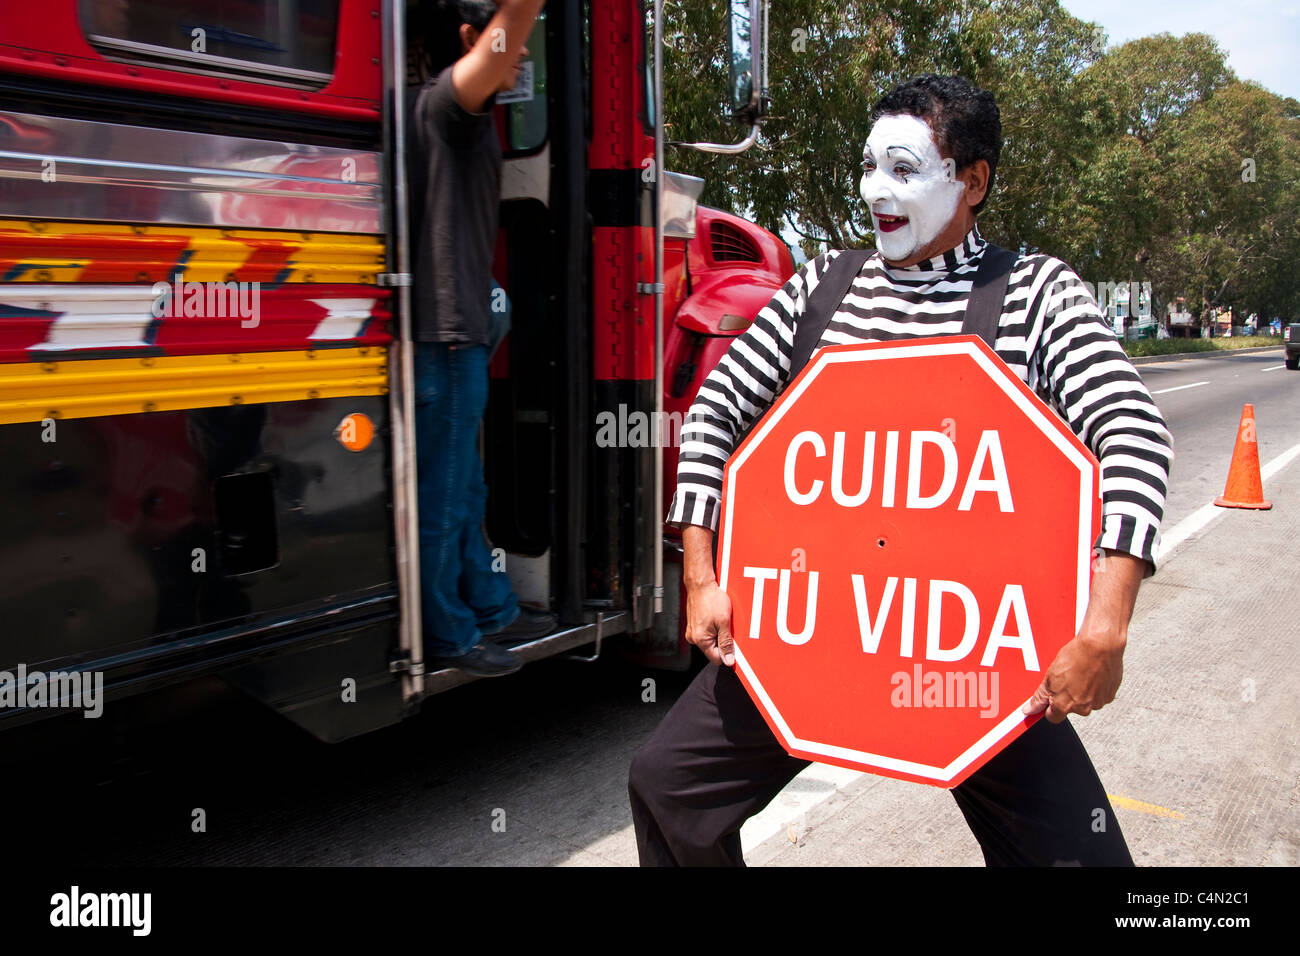 Mime on Guatemala City street with 'Take Care of Your Life' (Cuida tu Vida) sign promoting highway safety - Stock Image